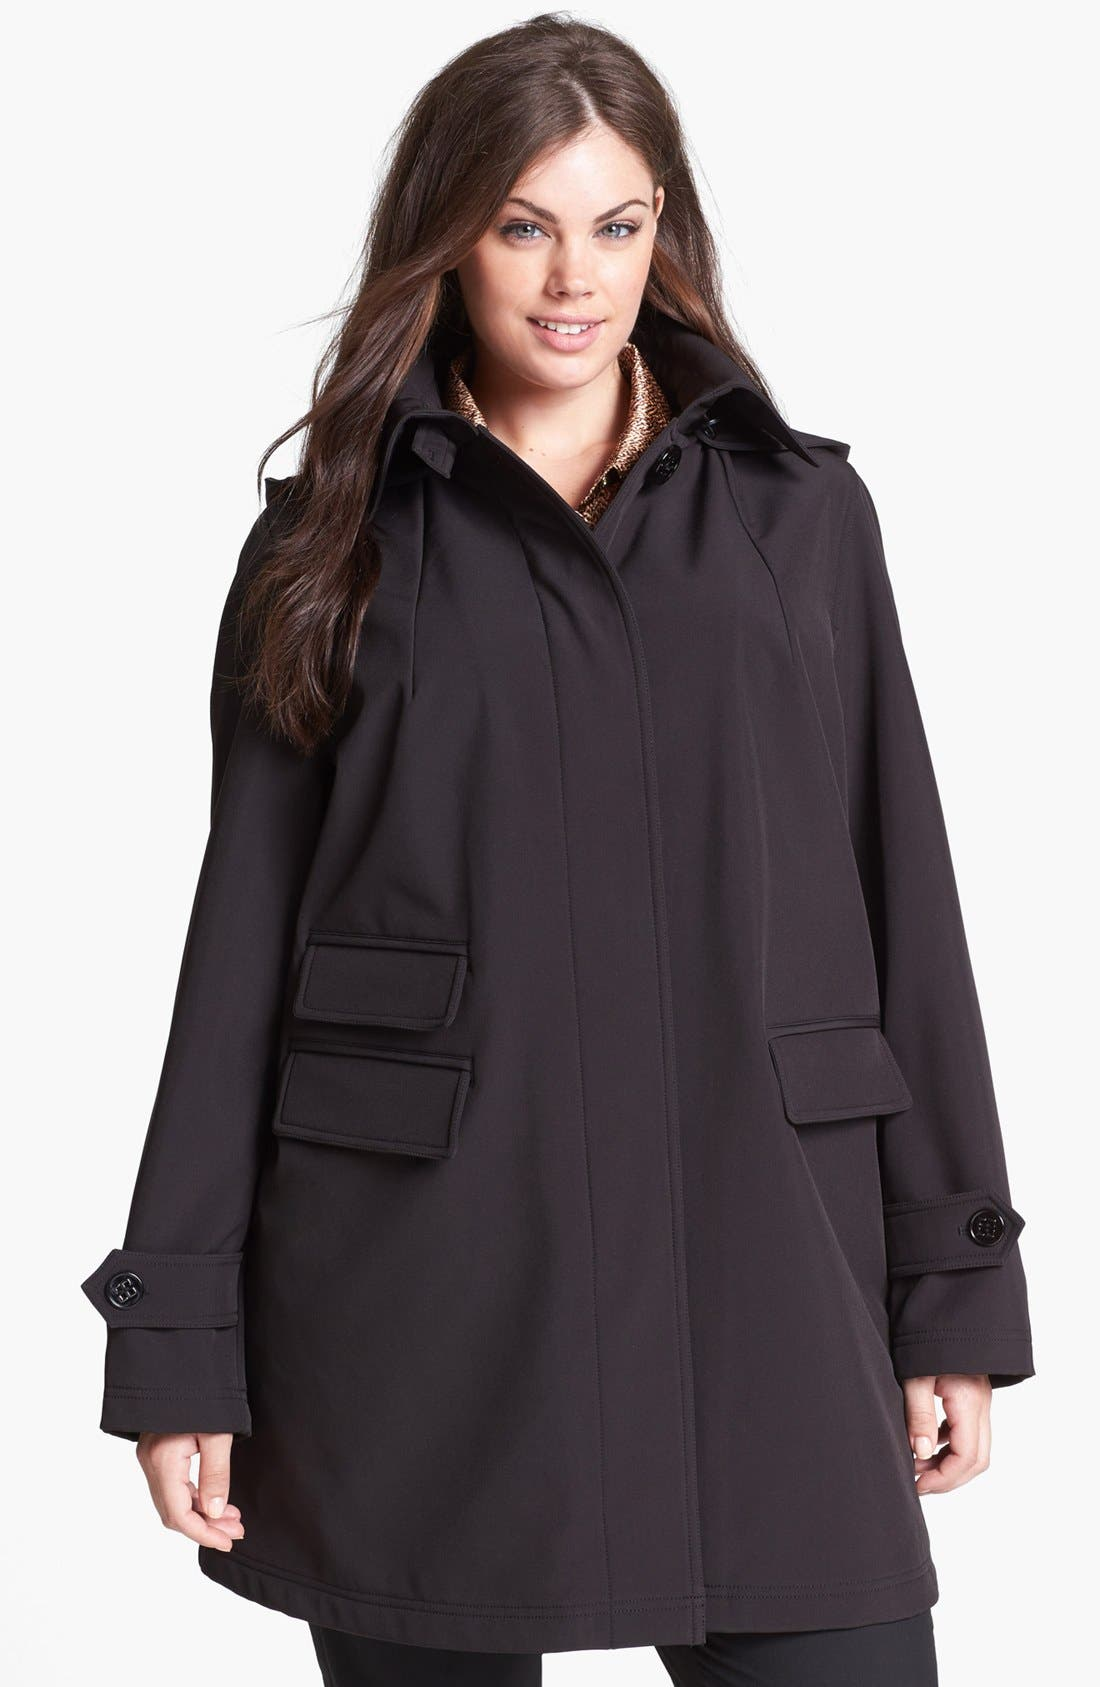 Alternate Image 1 Selected - Gallery Soft Shell Swing Coat with Detachable Hood (Plus Size)